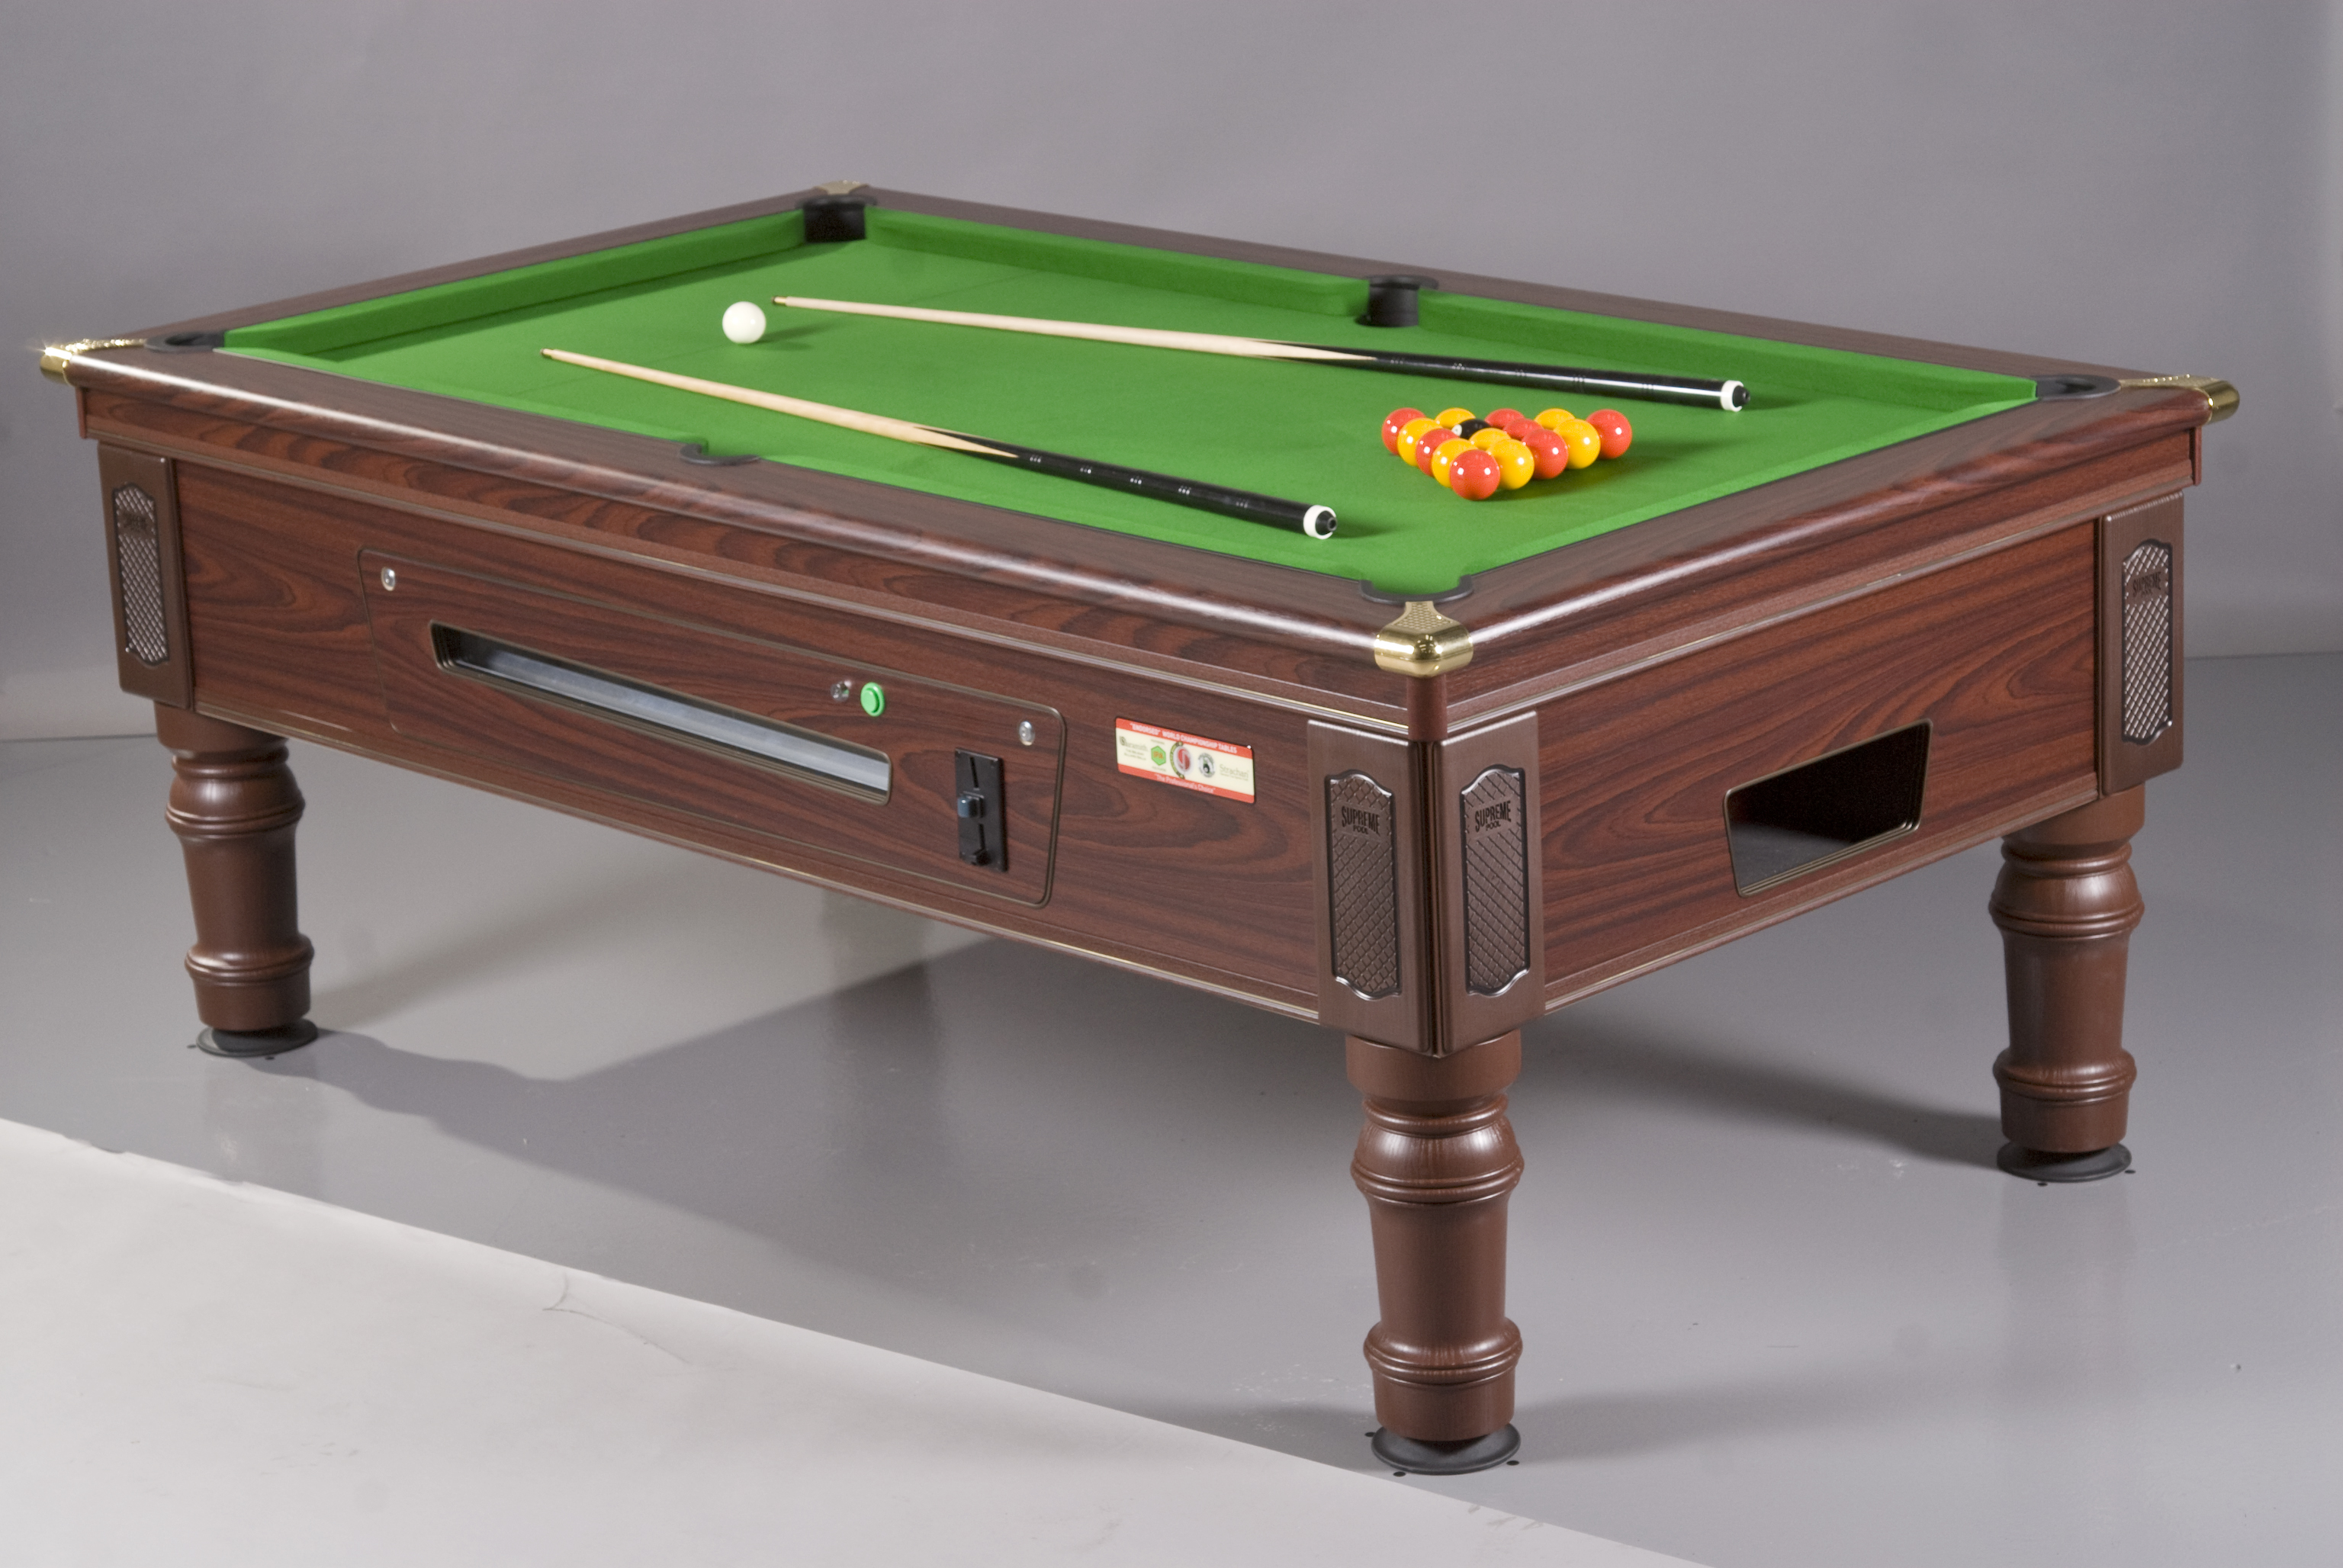 Pubs with pool tables images table decoration ideas pool table watchthetrailerfo creating an amazing common room on a budget manco automatics watchthetrailerfo bars and pubs archives watchthetrailerfo